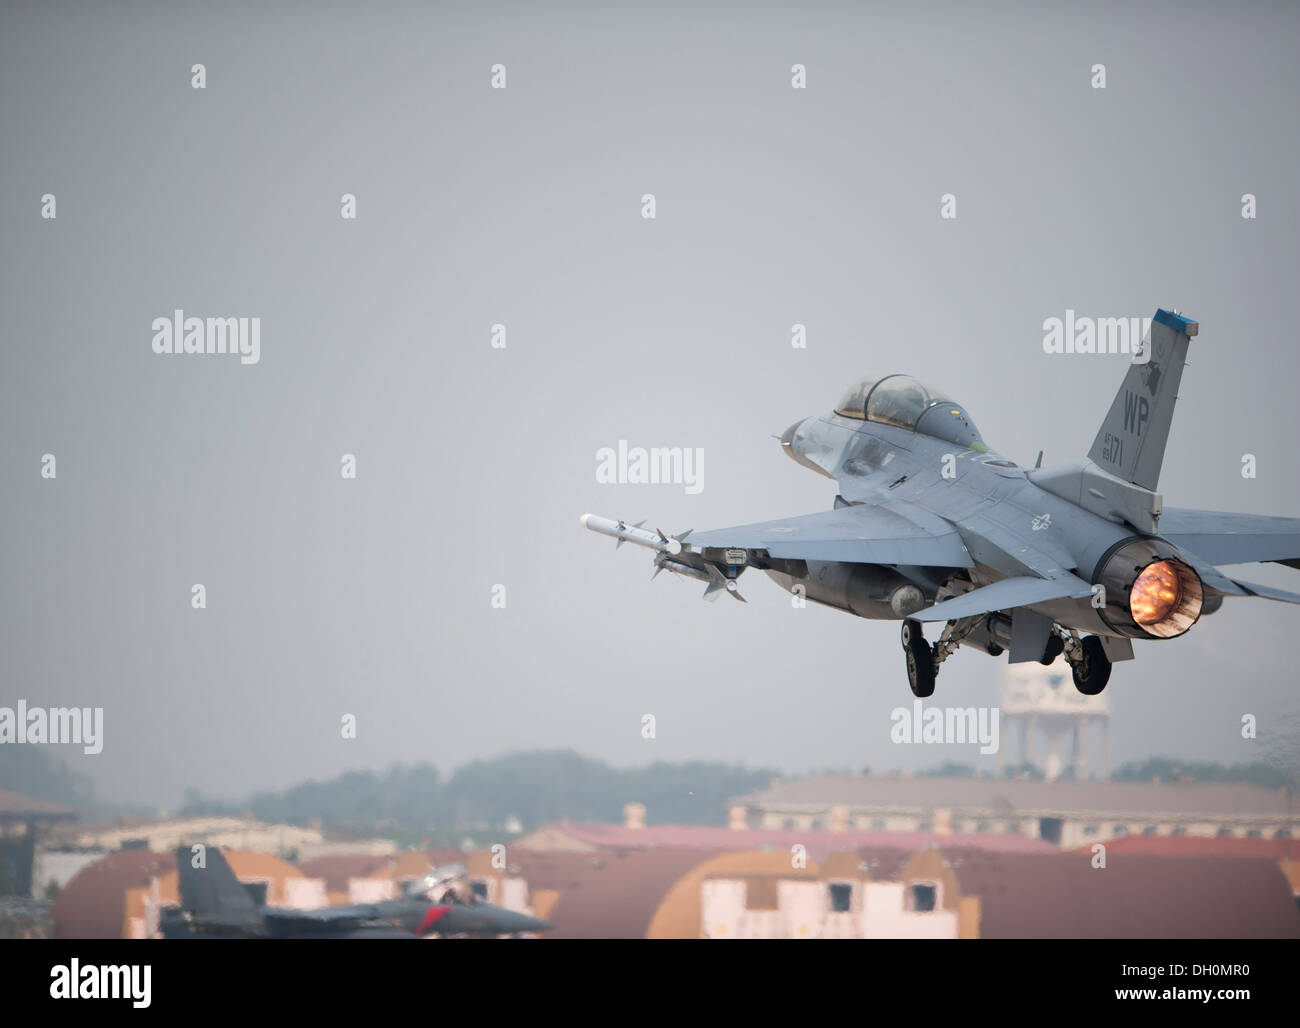 F-16 Fighting Falcon takes off during Max Thunder 13-2 at Kunsan Air Base, Republic of Korea, Oct. 28, 2013. U.S. Air Force Air - Stock Image